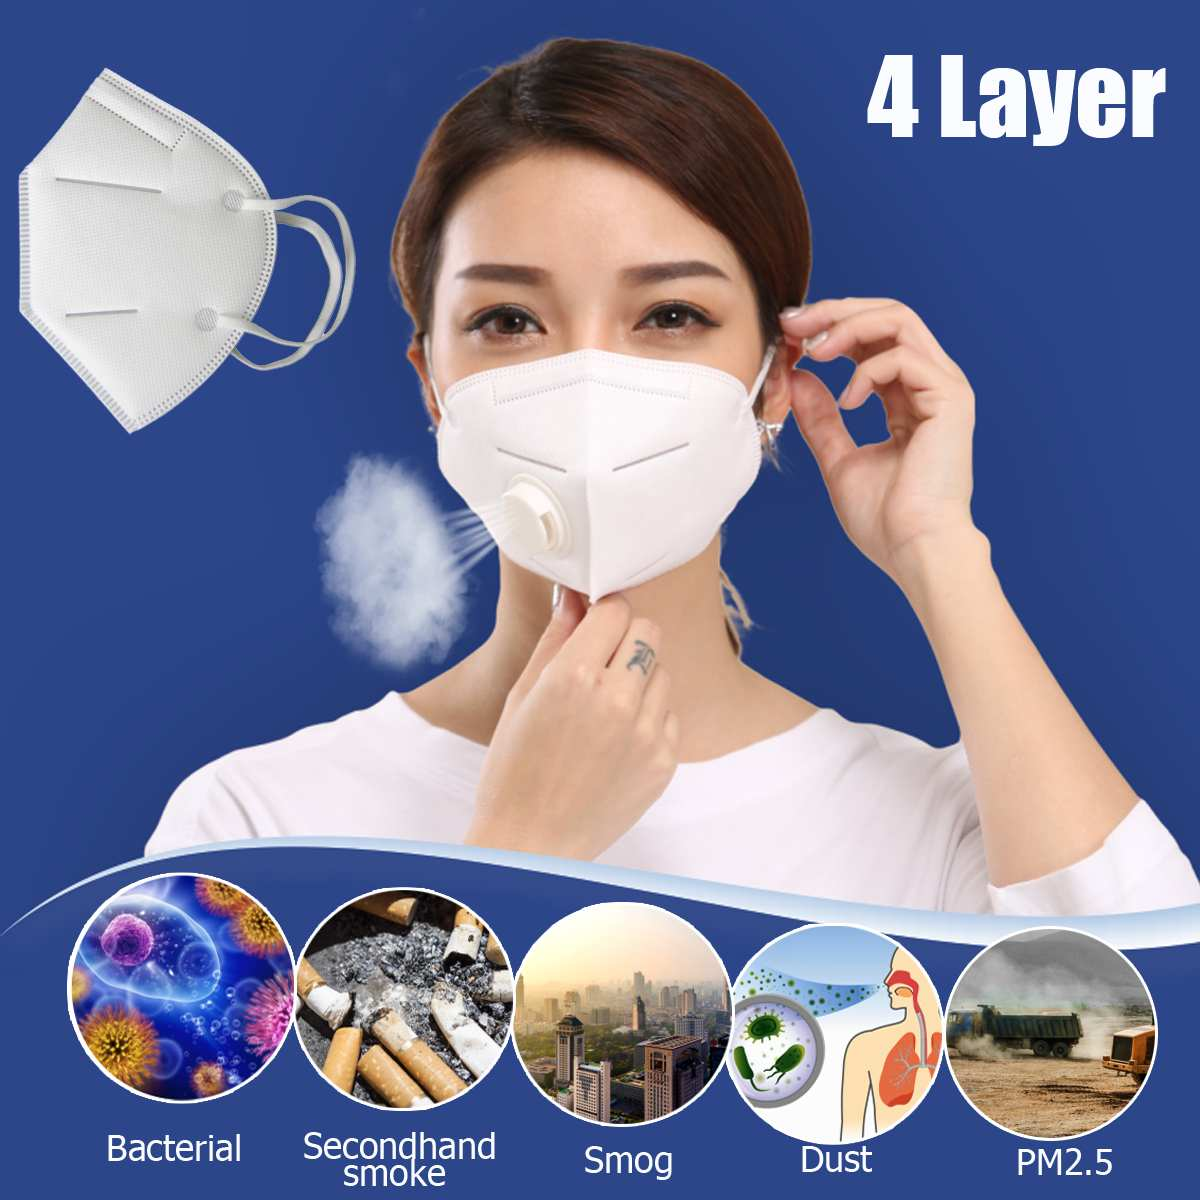 Personal Health Care Rapture Kifit 1pc Anti Pollution Mask Air Filter Mask N95 4/5 Layer Breathing Valve Dustproof Anti-virus Fog Pathogen Mask